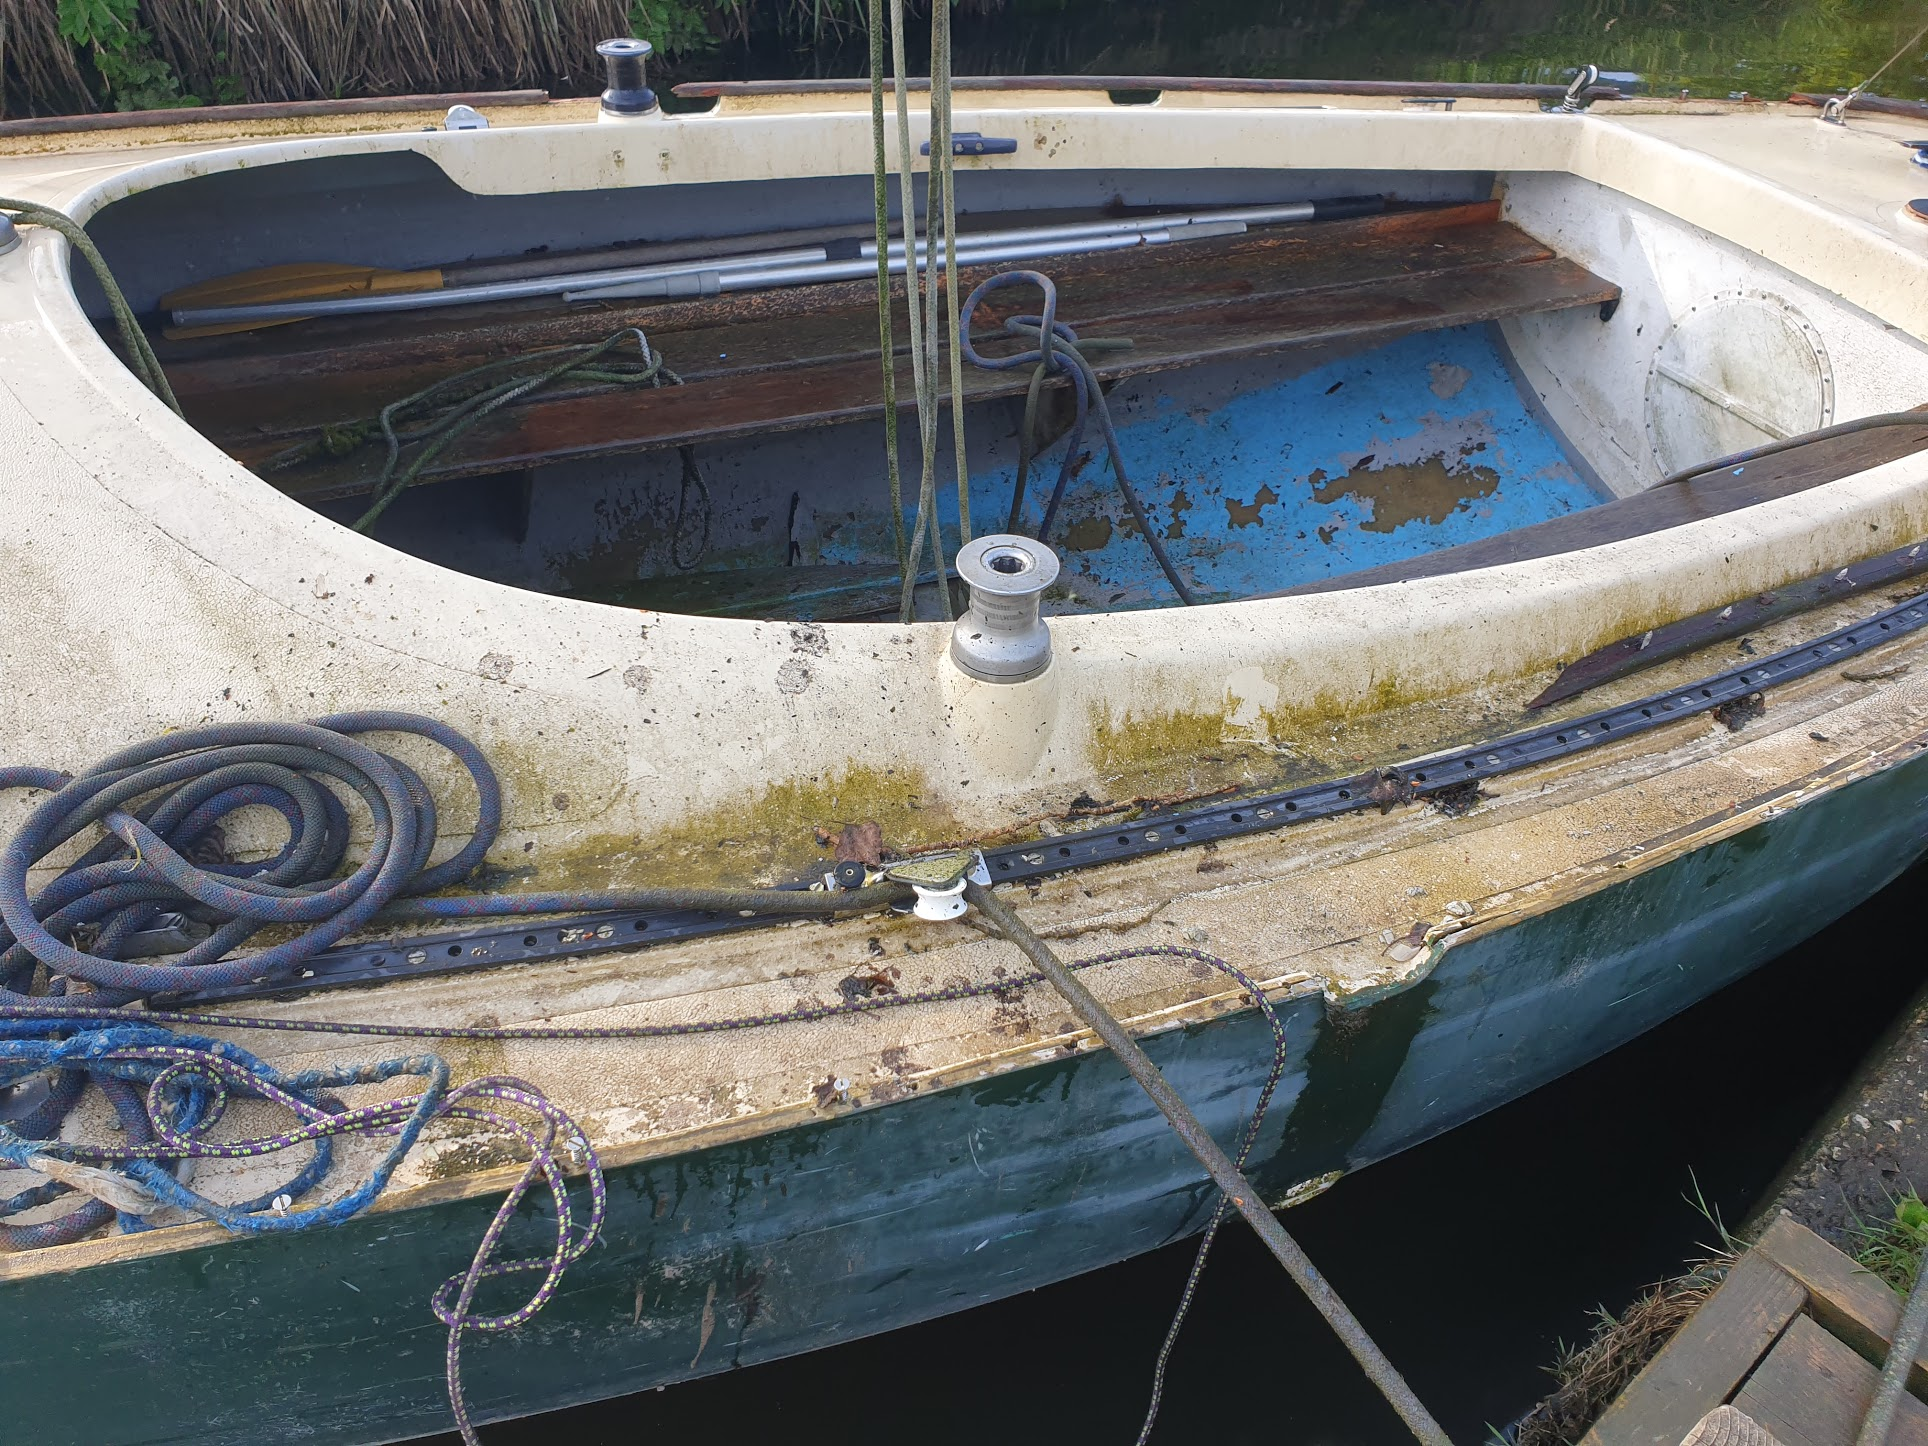 image from Post 1: Restoring a Hanseatic 19.2